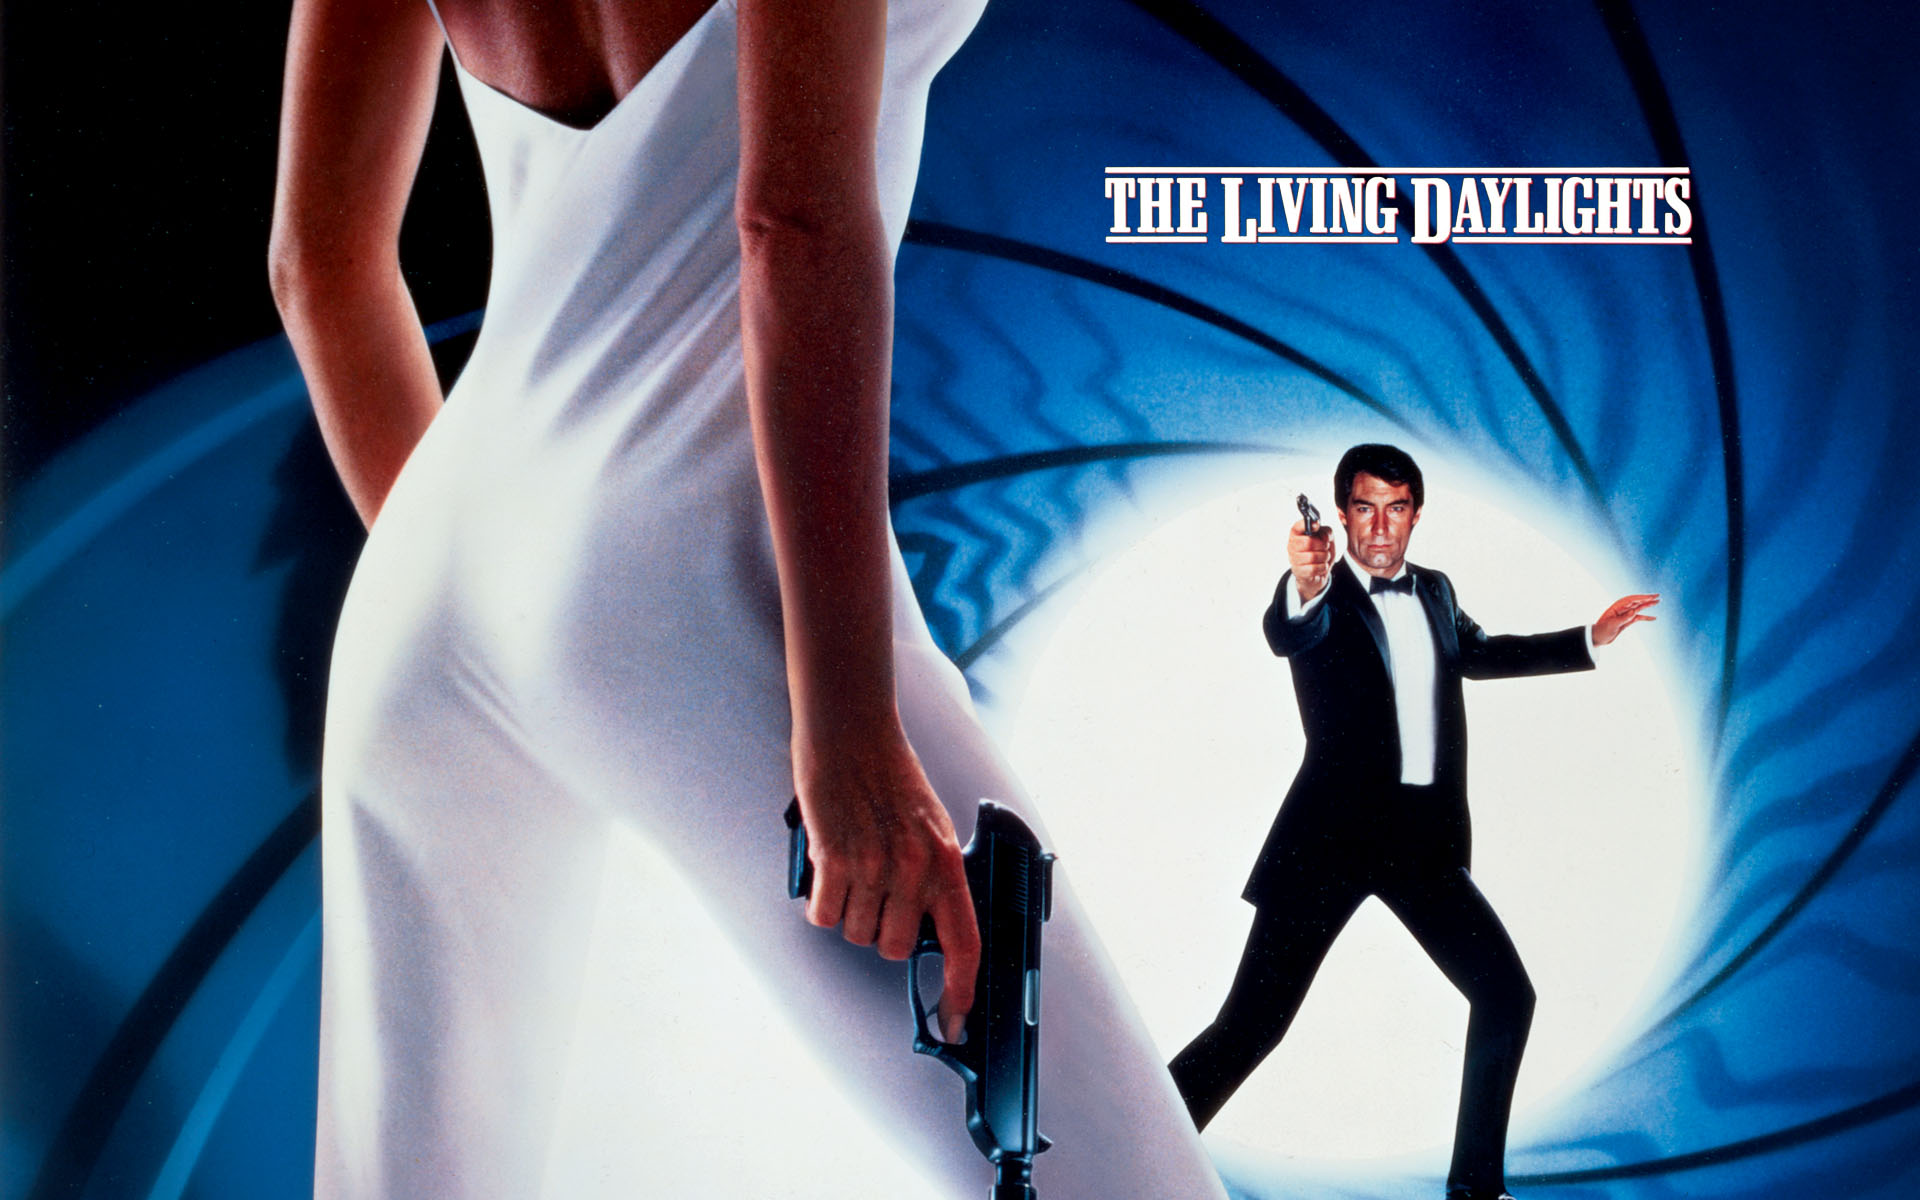 005-the-living-daylights-wallpapers-007.jpg